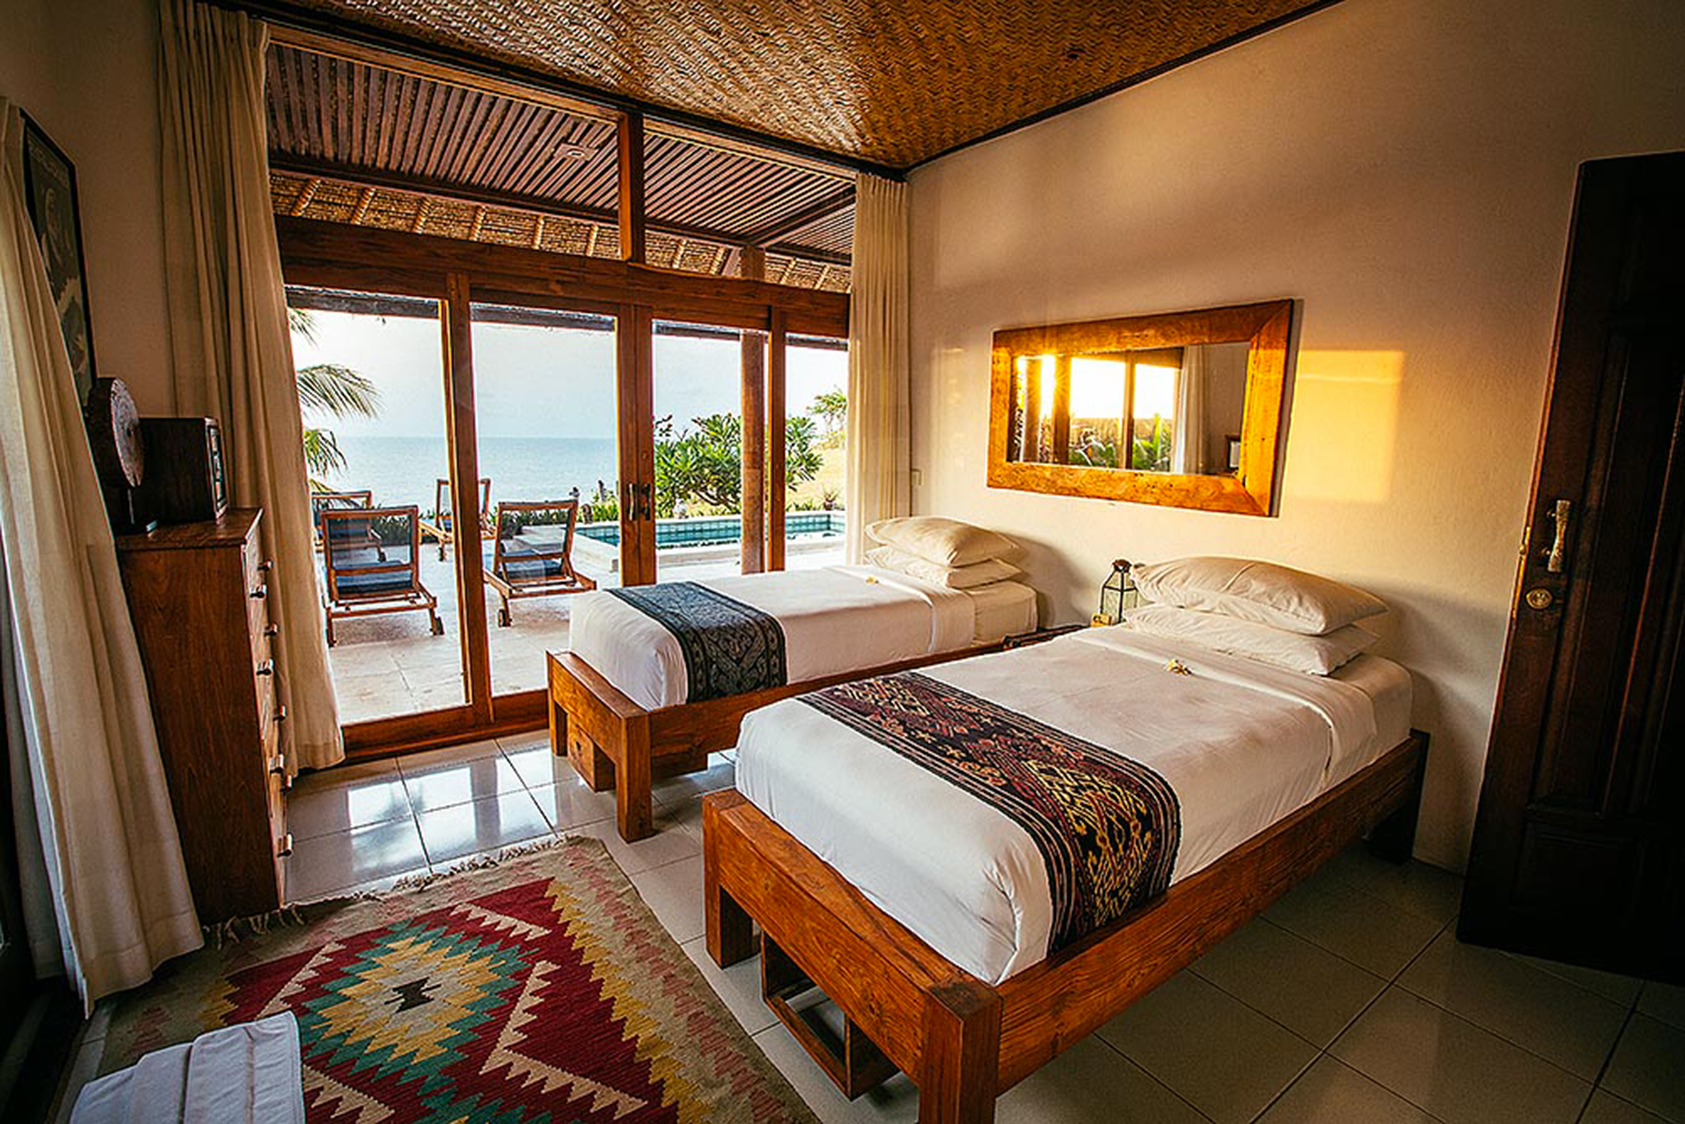 PACKAGE 1 - FULL SIZE W/ SHARED BATH  Features: Shared Bath, Ocean Views, Air Conditioning, Modern Suite, Full Size Bed